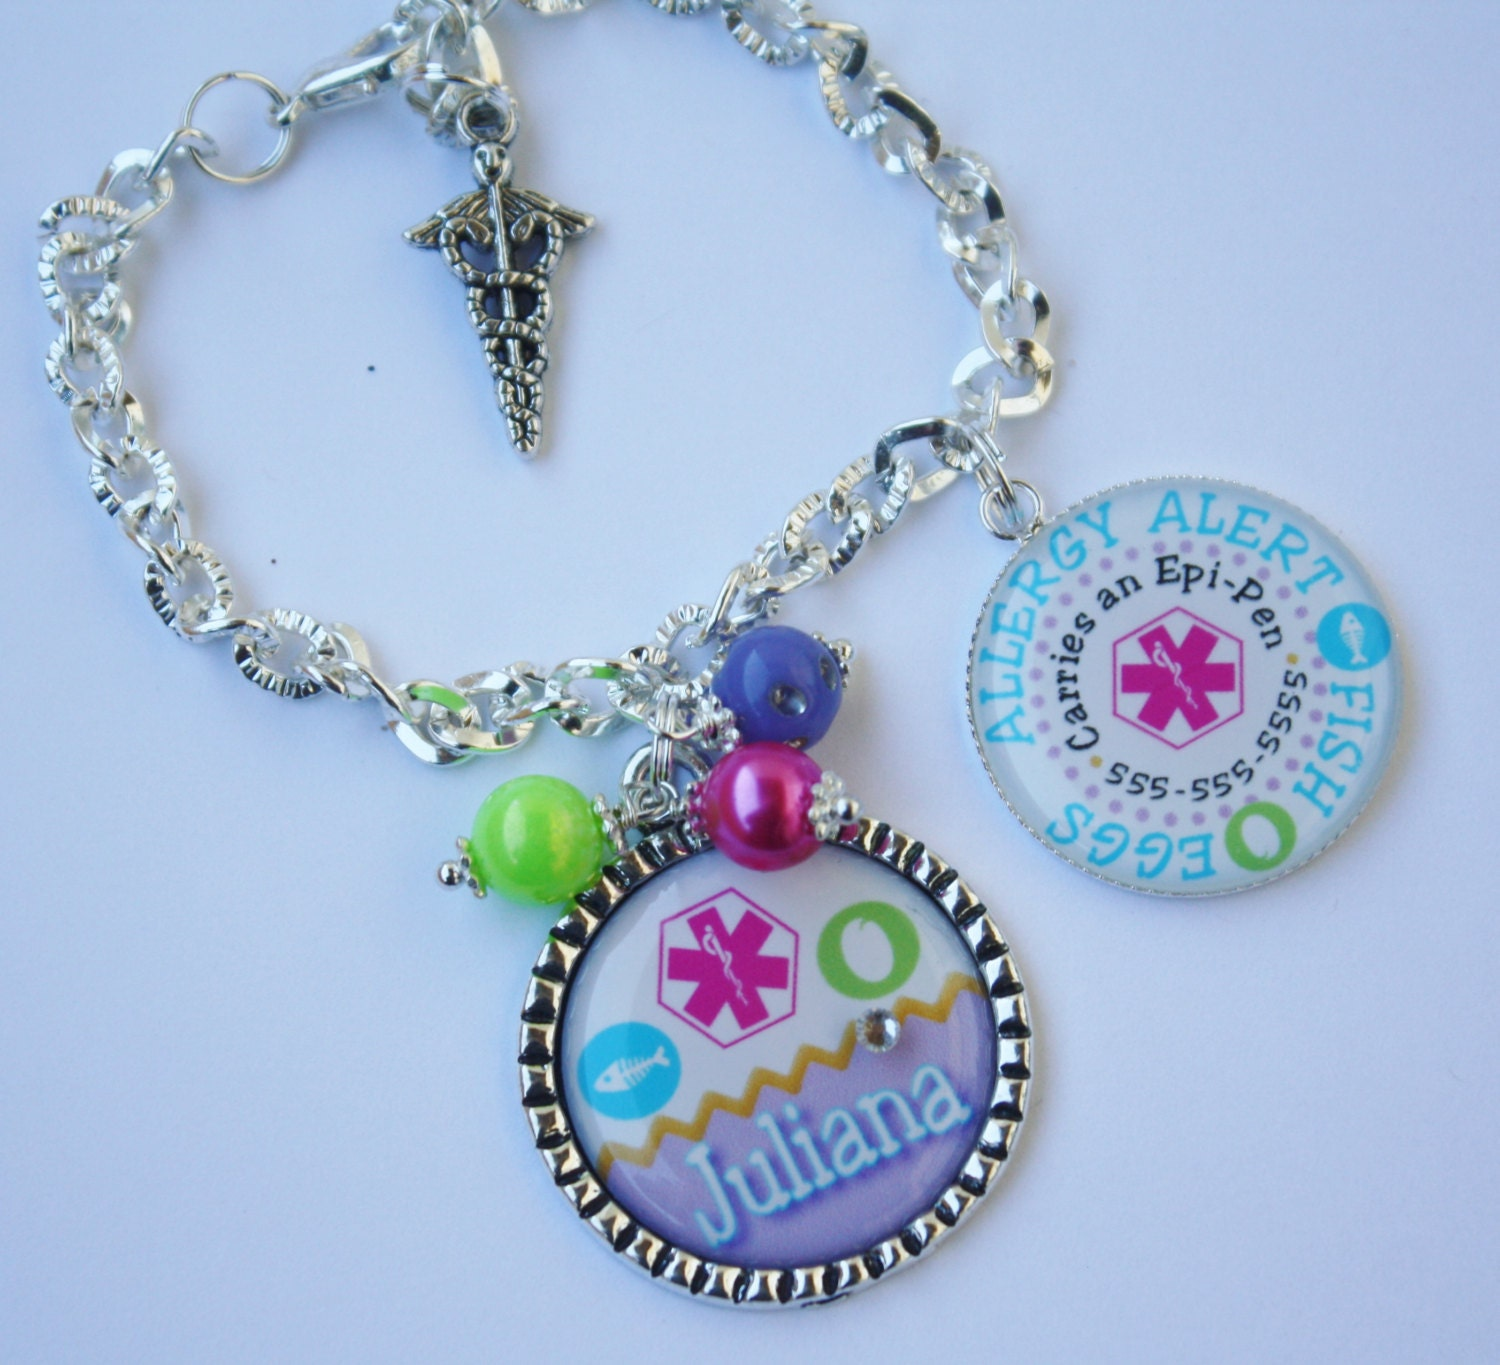 personalized allergy alert bracelet or necklace id with